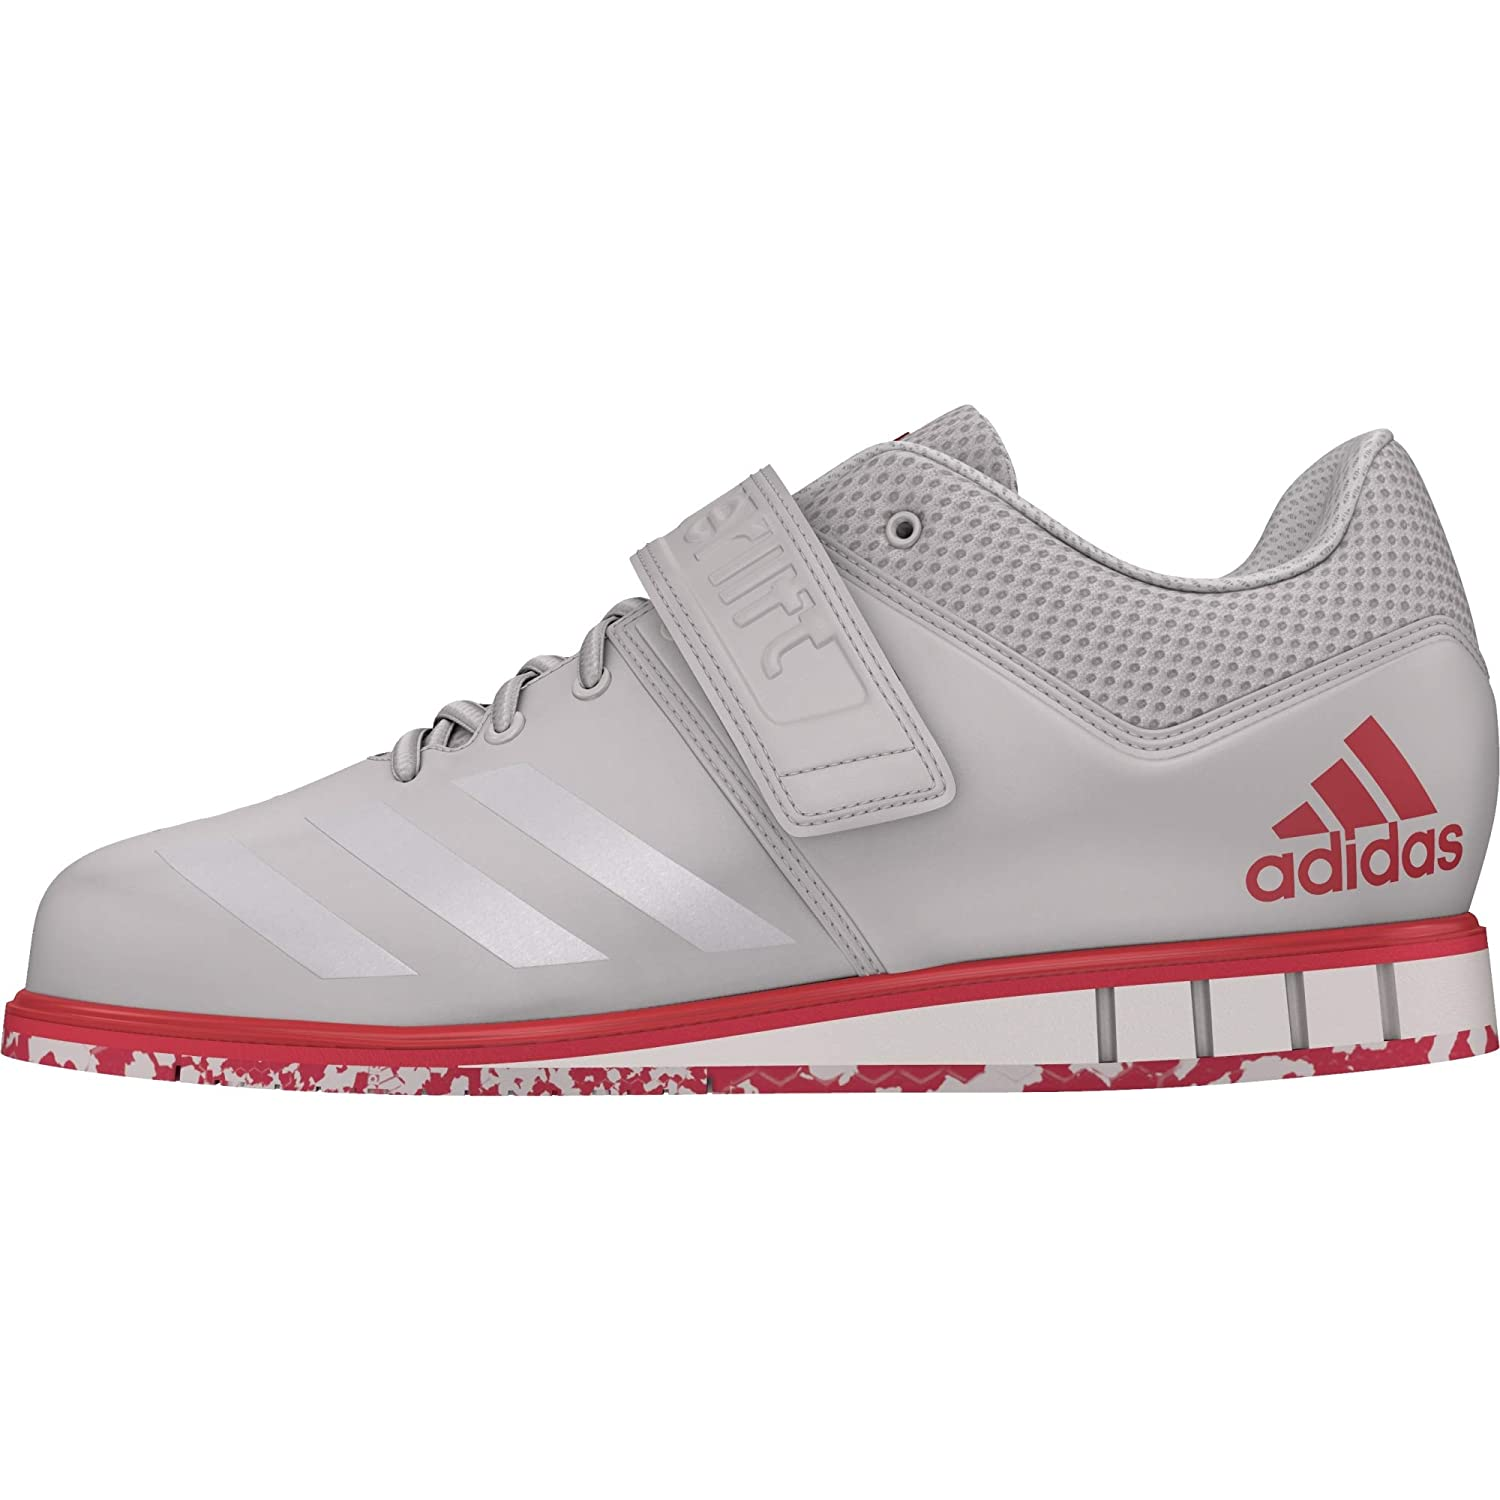 adidas Powerlift.3.1, Chaussures Multisport Indoor Homme